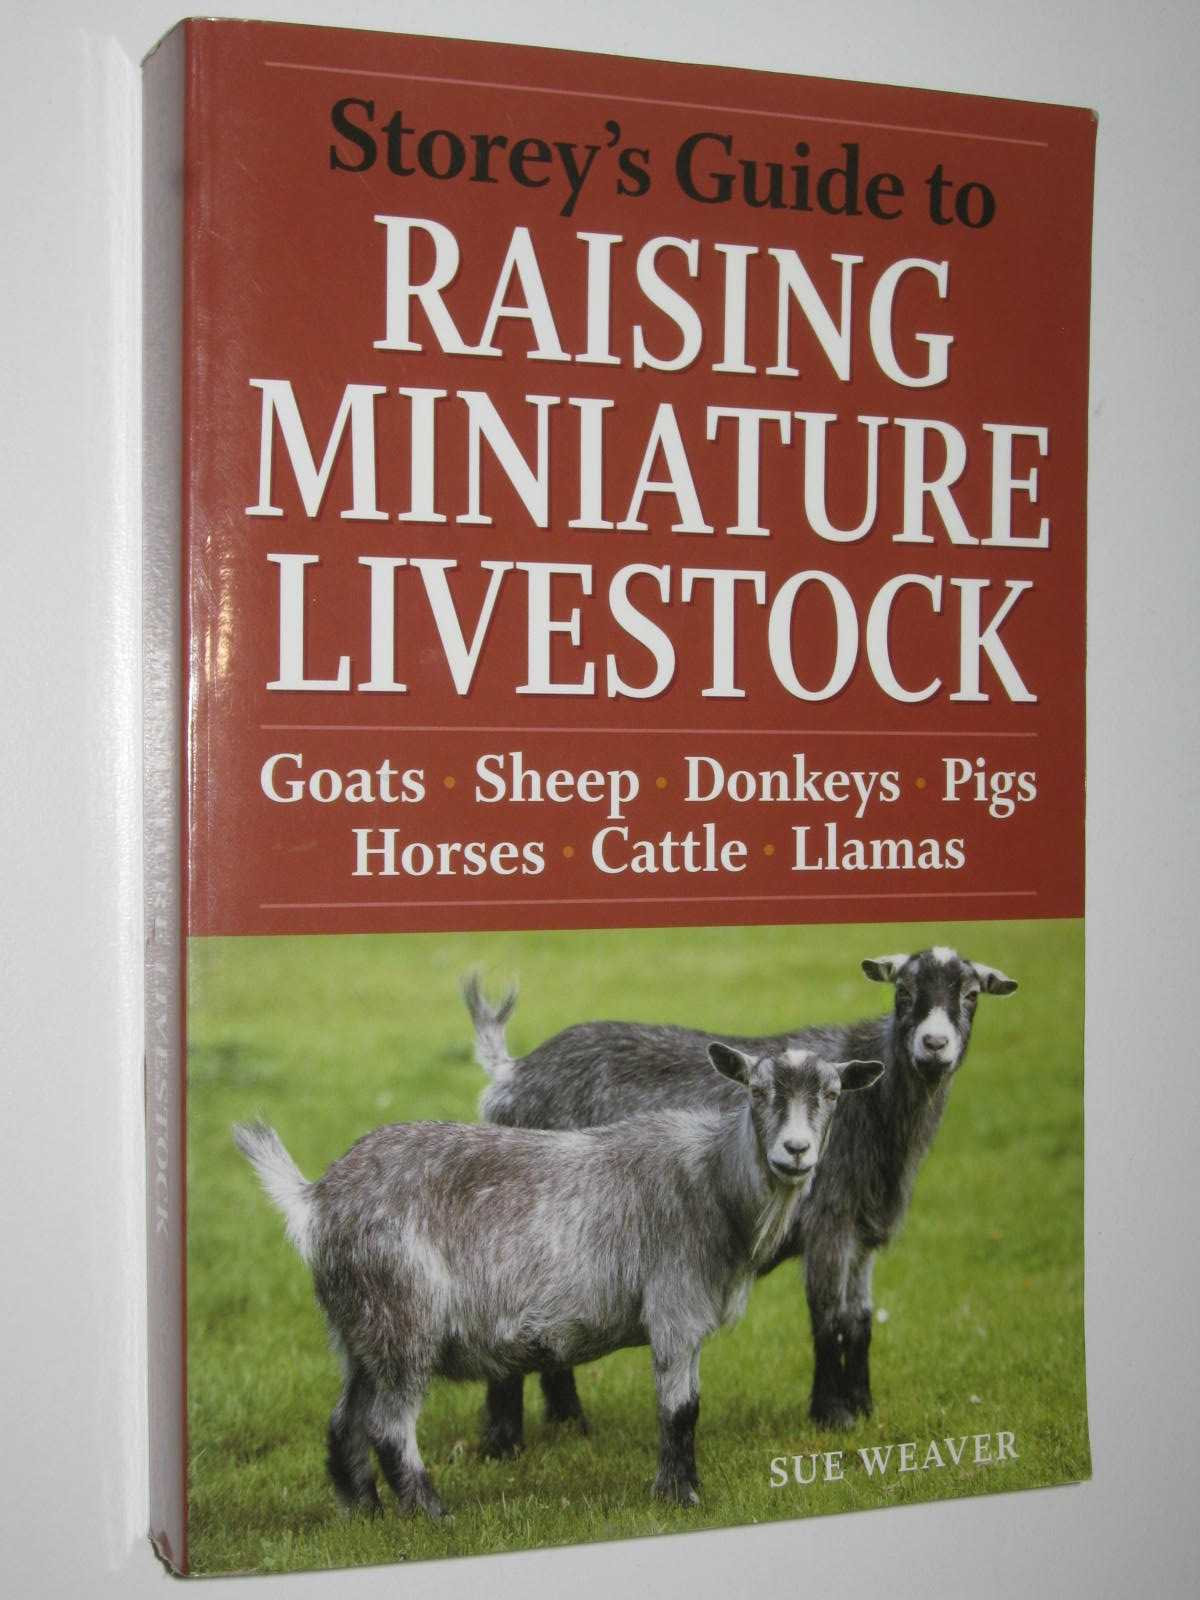 Image for Storey's Guide to Raising Miniature Livestock : Goats, Sheep, Donkeys, Pigs, Horses, Cattle, Llamas